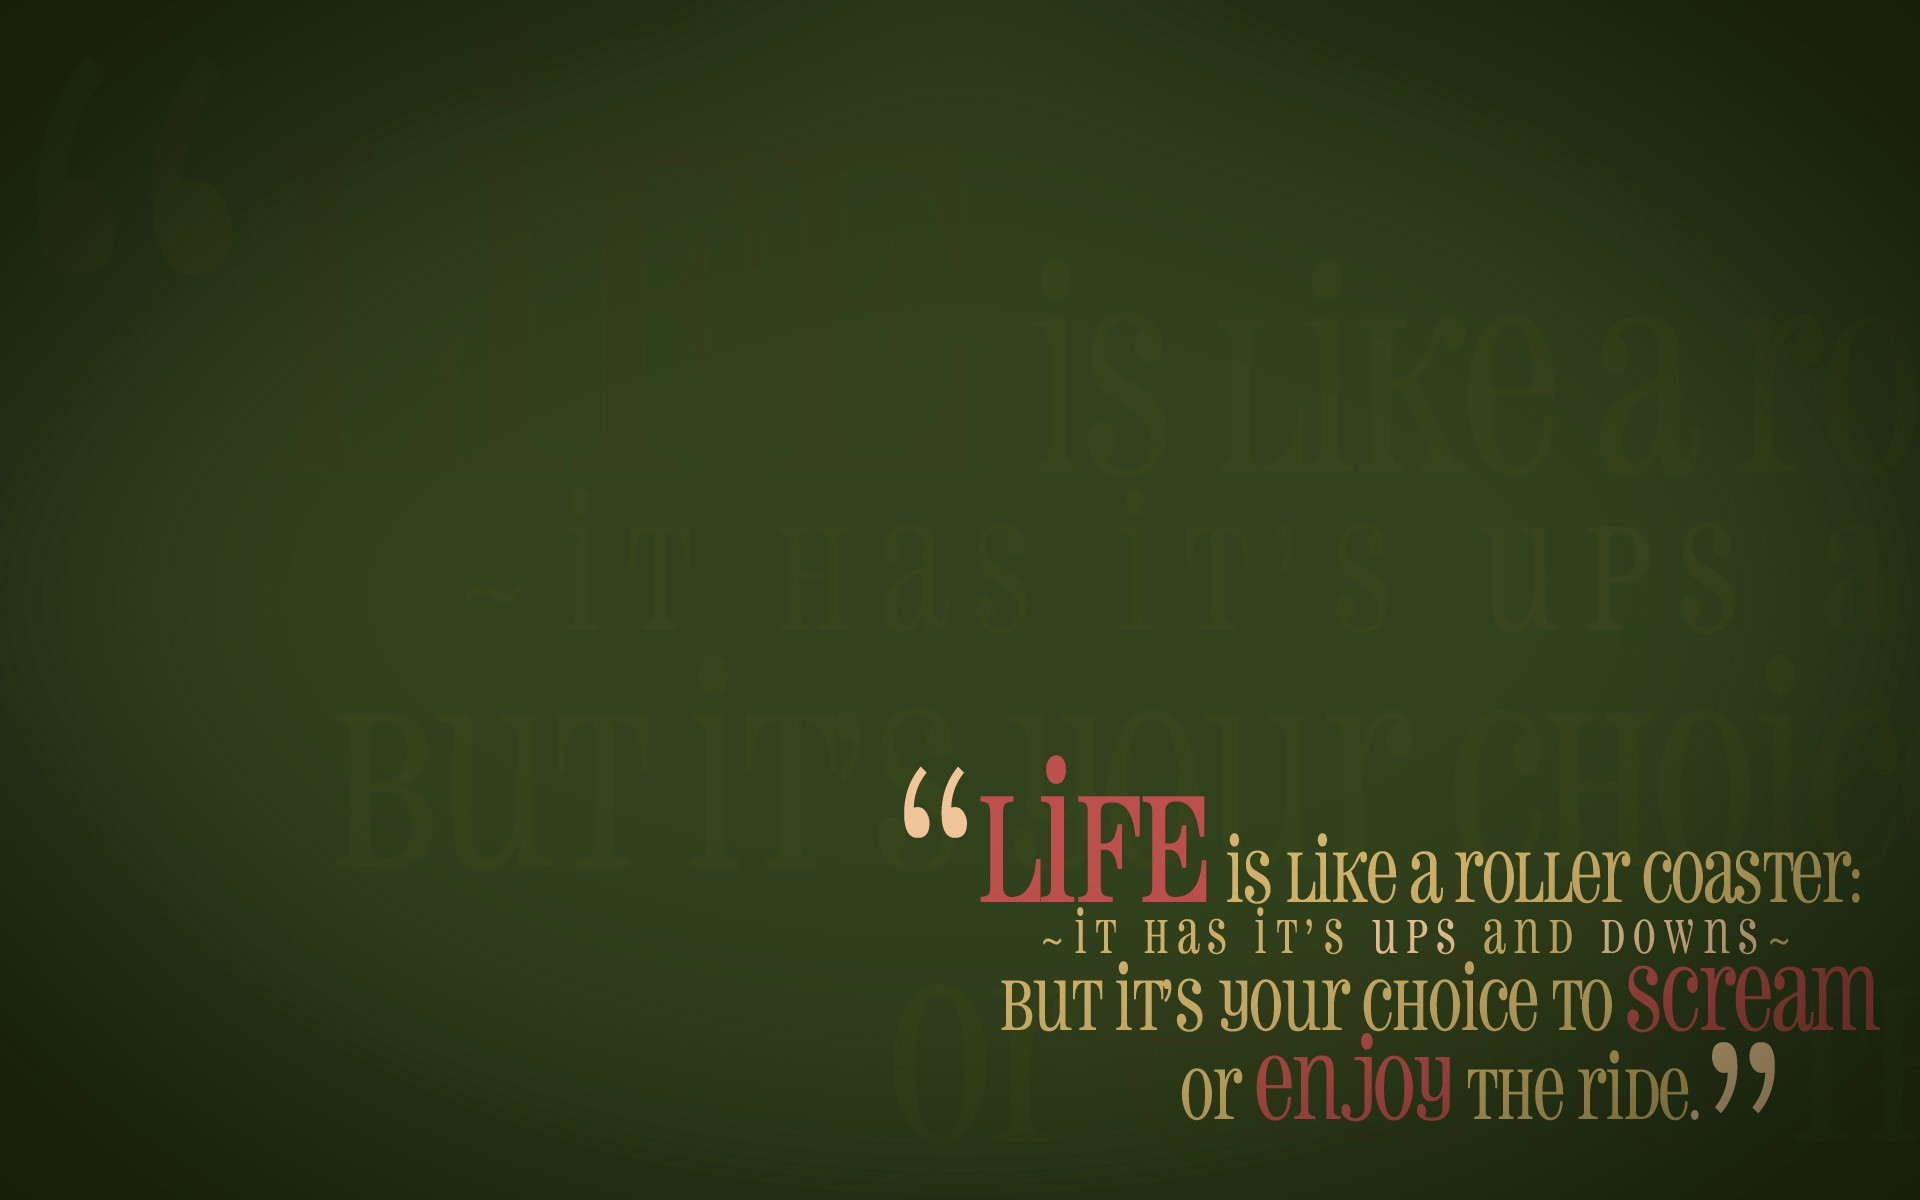 Green quote #2